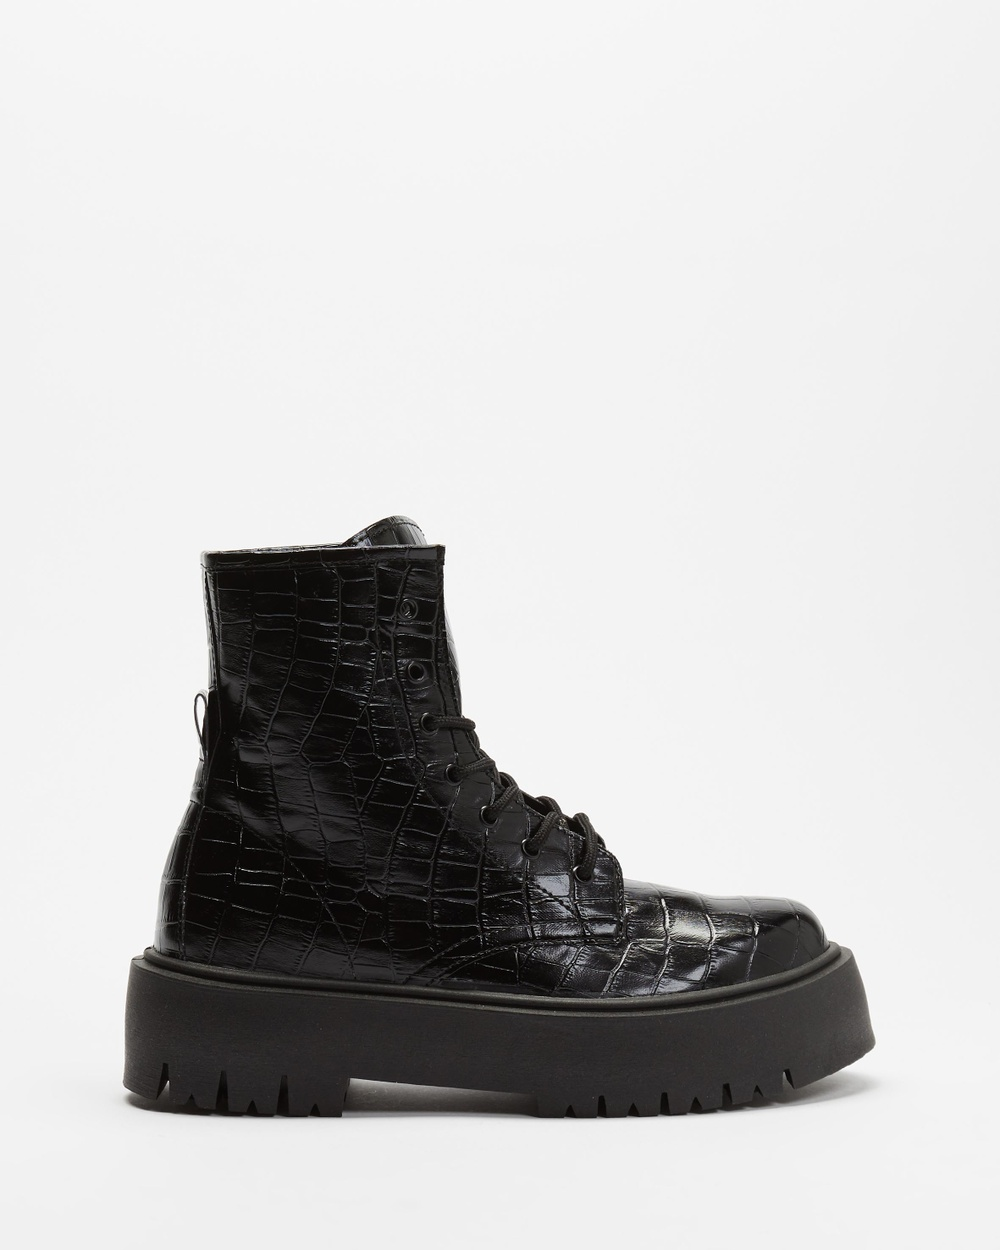 TOPSHOP Billy Croc Lace Up Boots Black